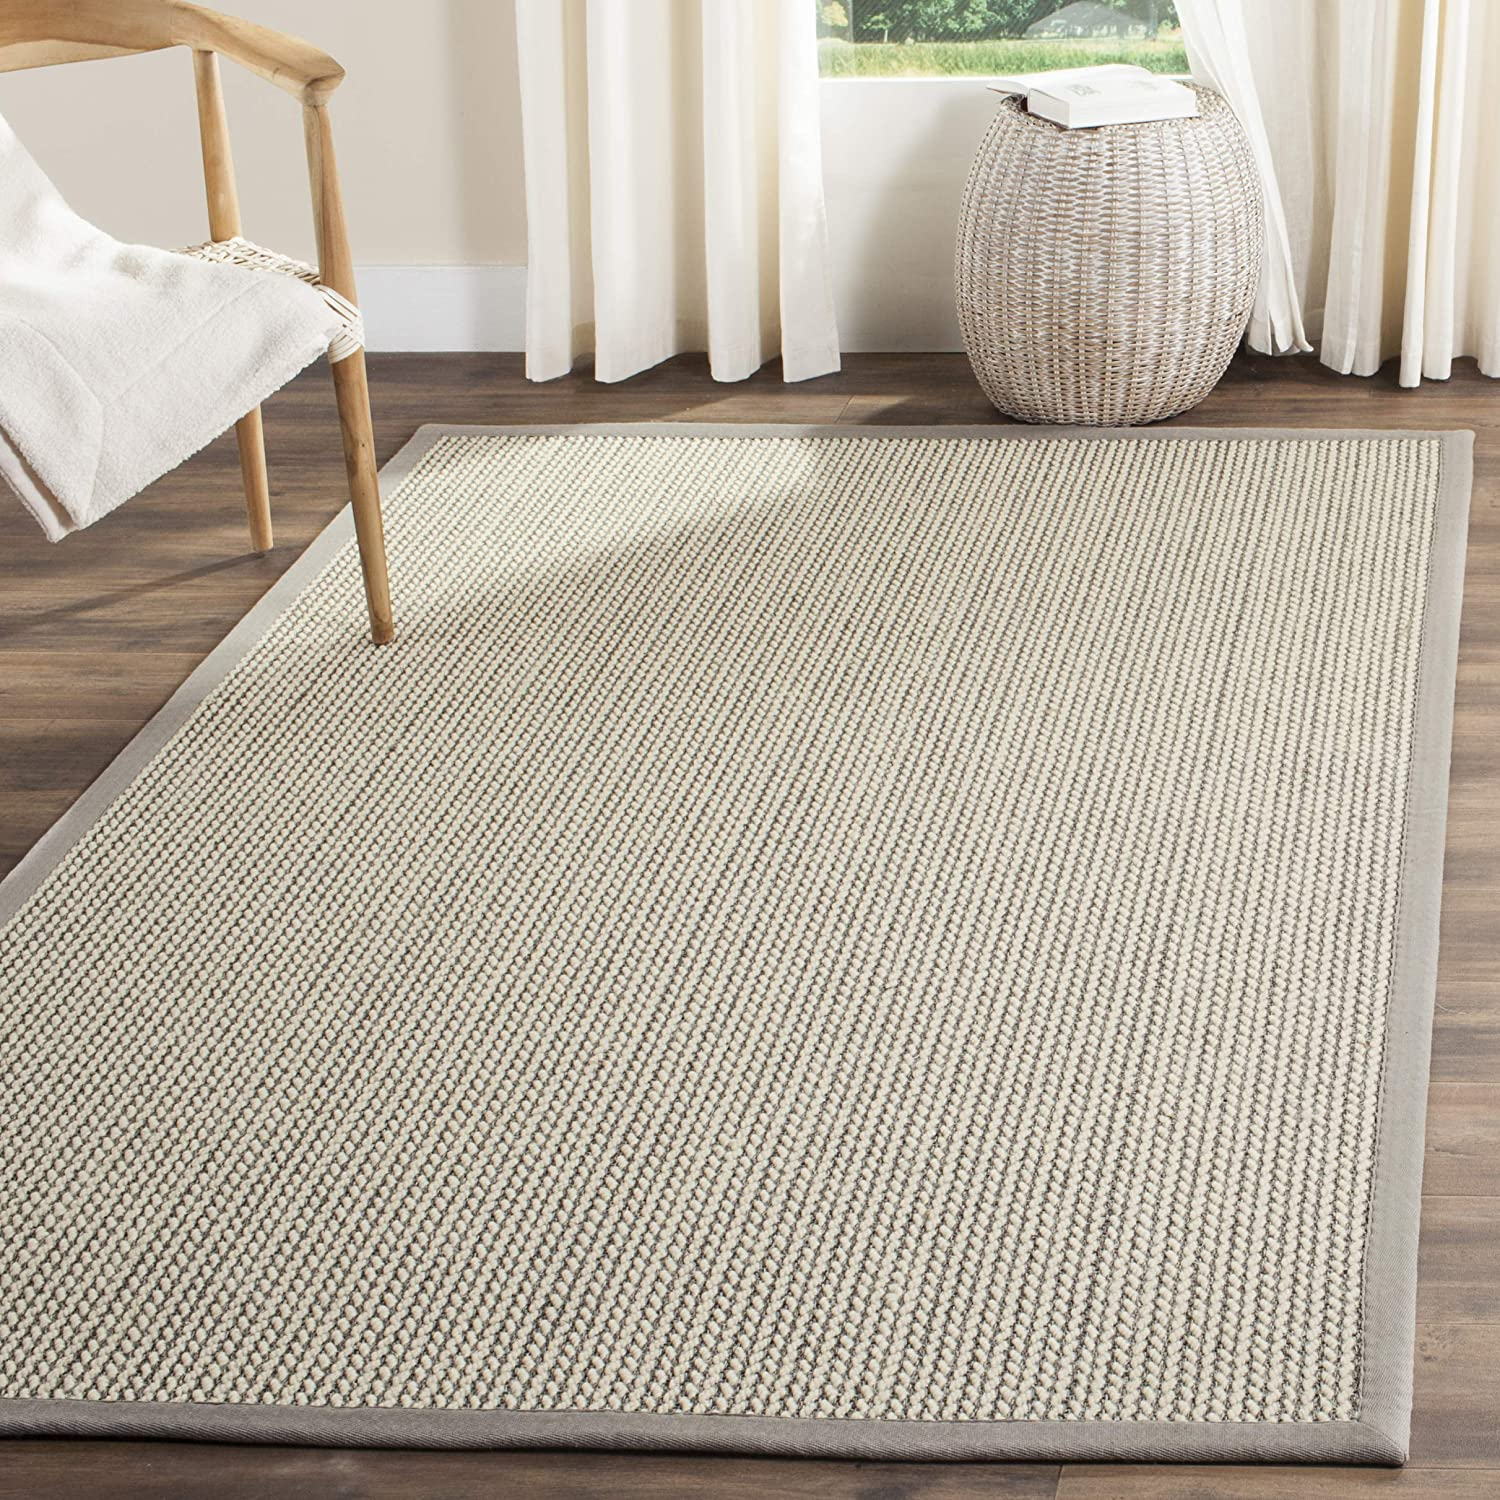 Safavieh Natural Fiber Collection NF475A Hand Woven Grey Wool & Sisal Area Rug (8' x 10')